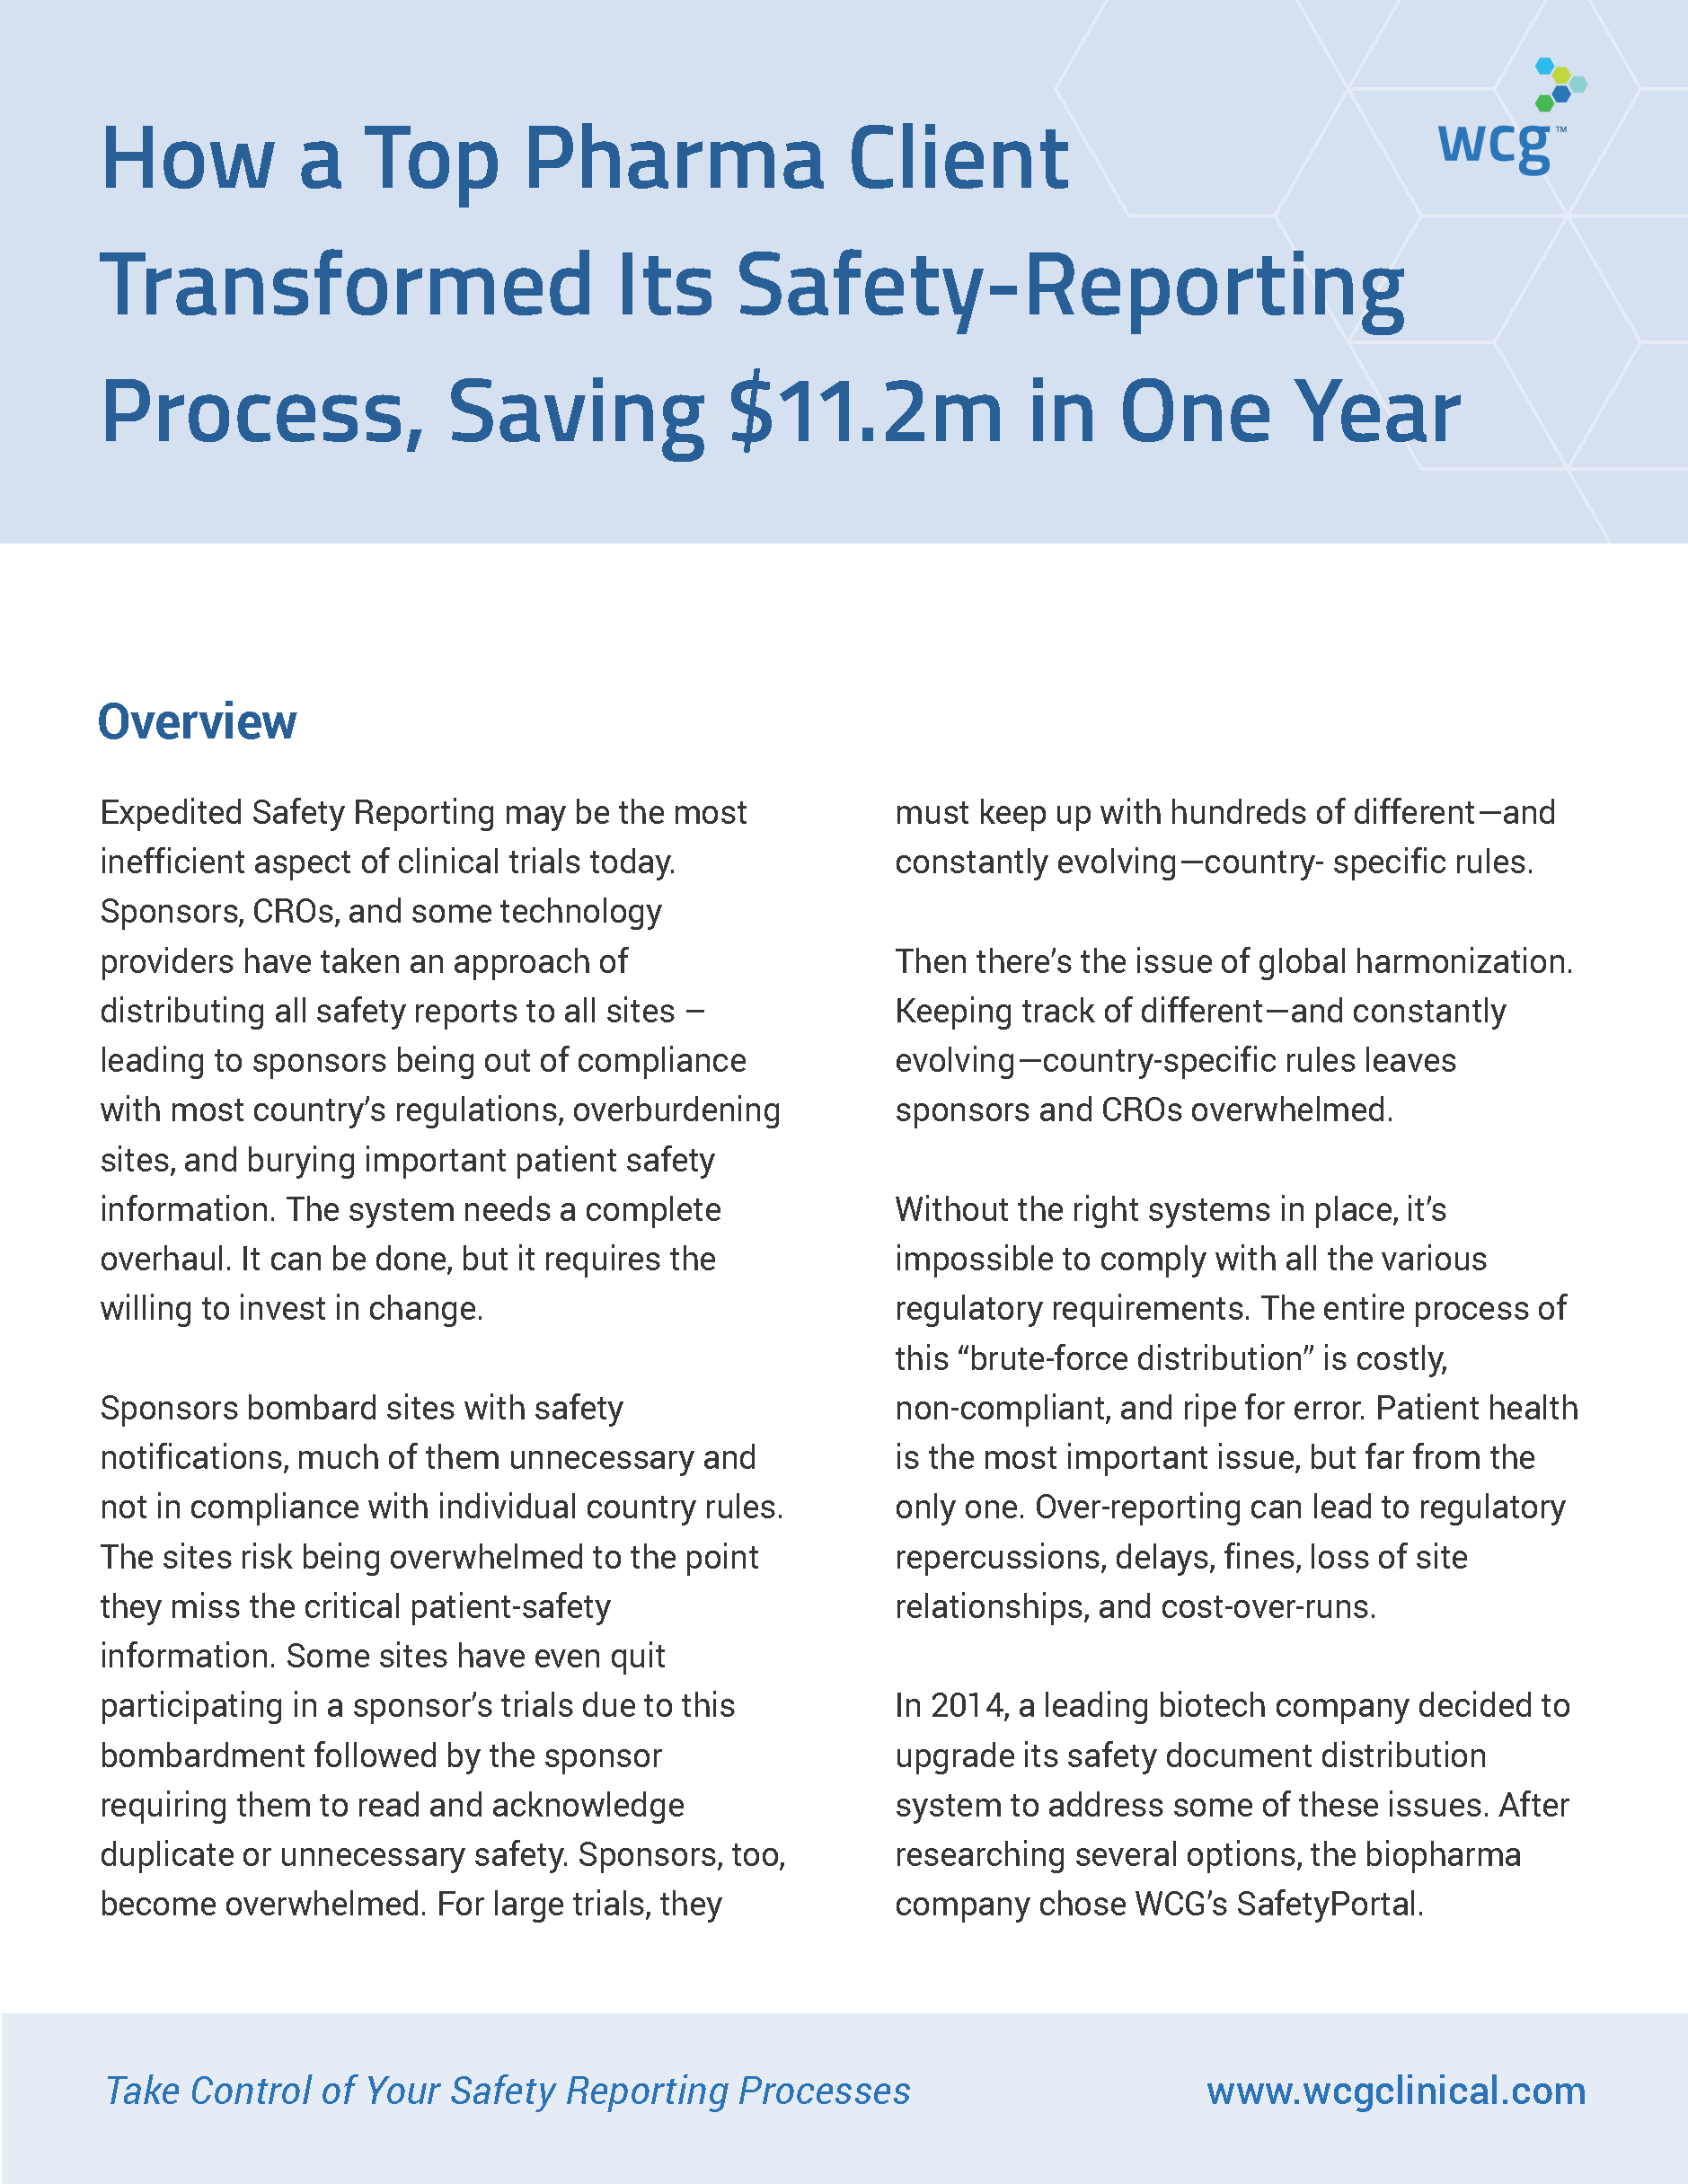 How A Top-Pharma Client Transformed Its Safety-Reporting Process, Saving $11.2 Million in One Year